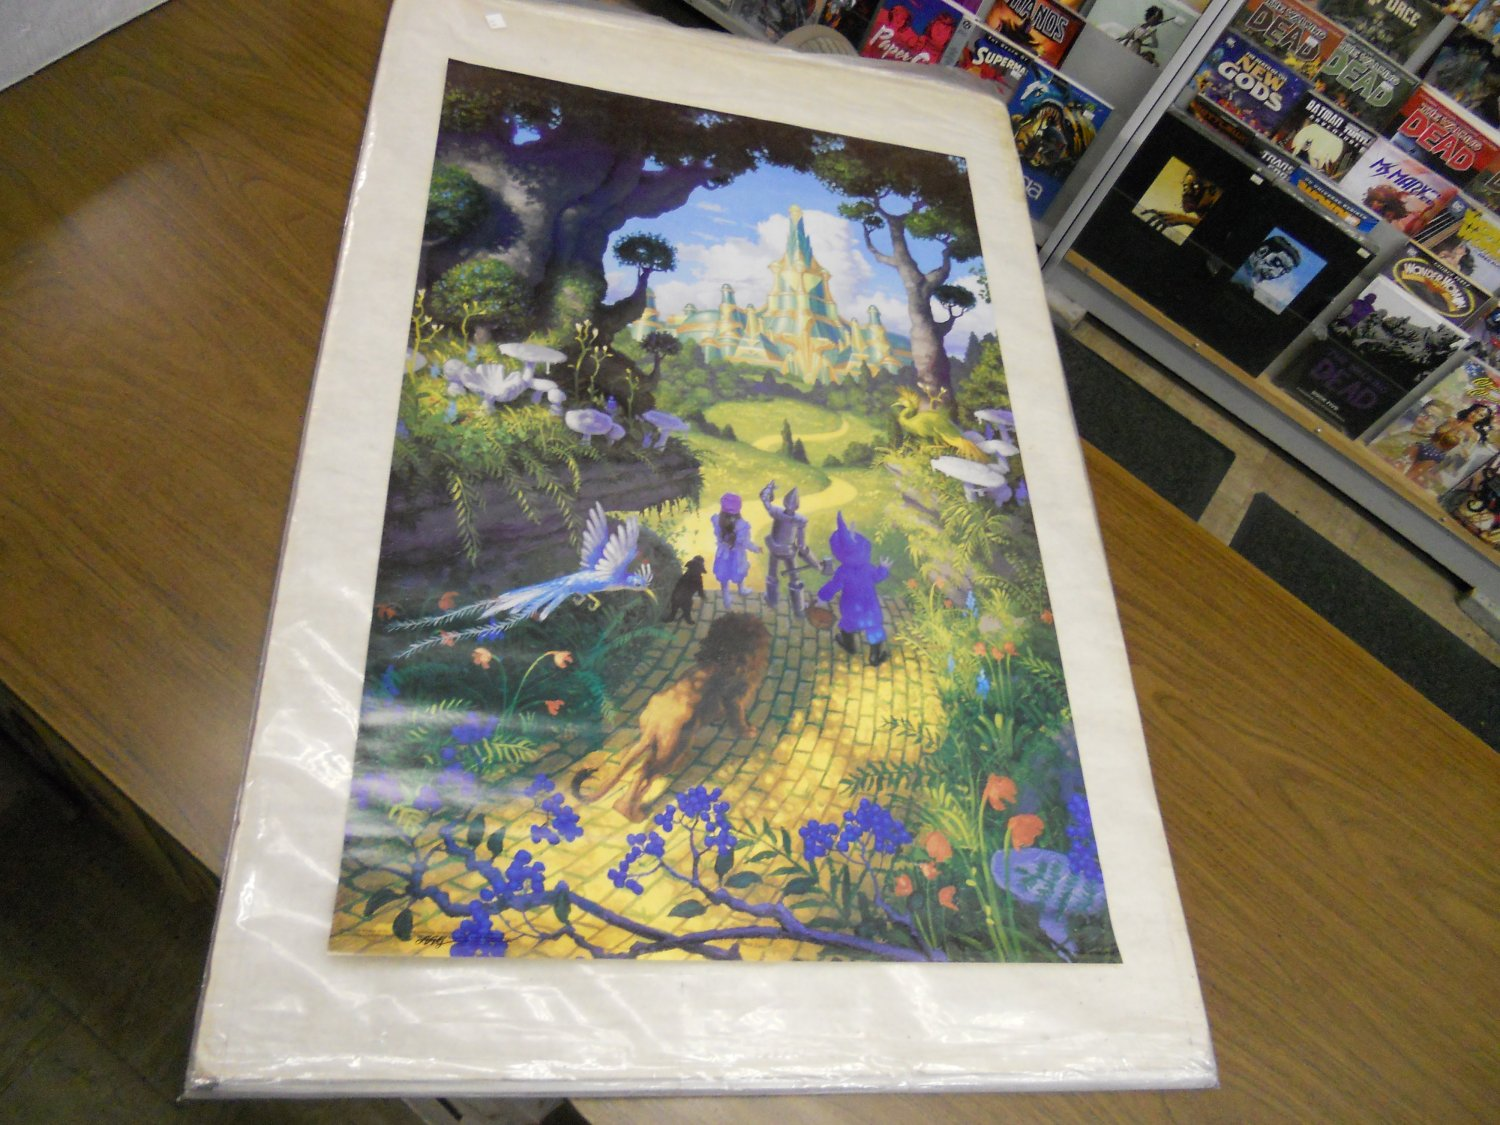 Vintage 1987 Wizard of Oz poster (art by Greg Hildebrandt) never previously displayed 23 x 35 inches